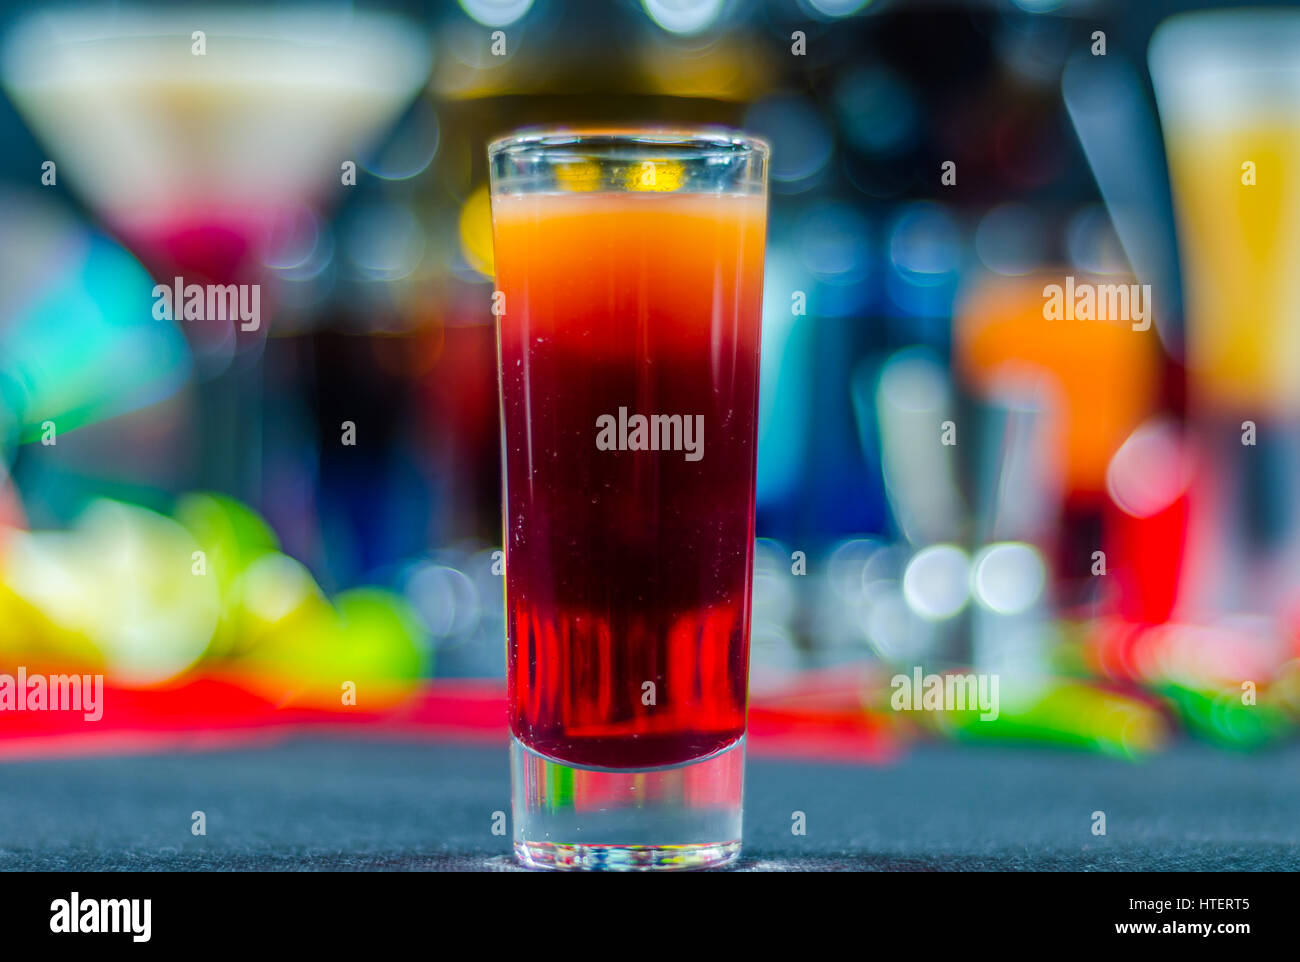 colored drink in glass for shots, a combination of orange with red, colorful background, drink shot - Stock Image